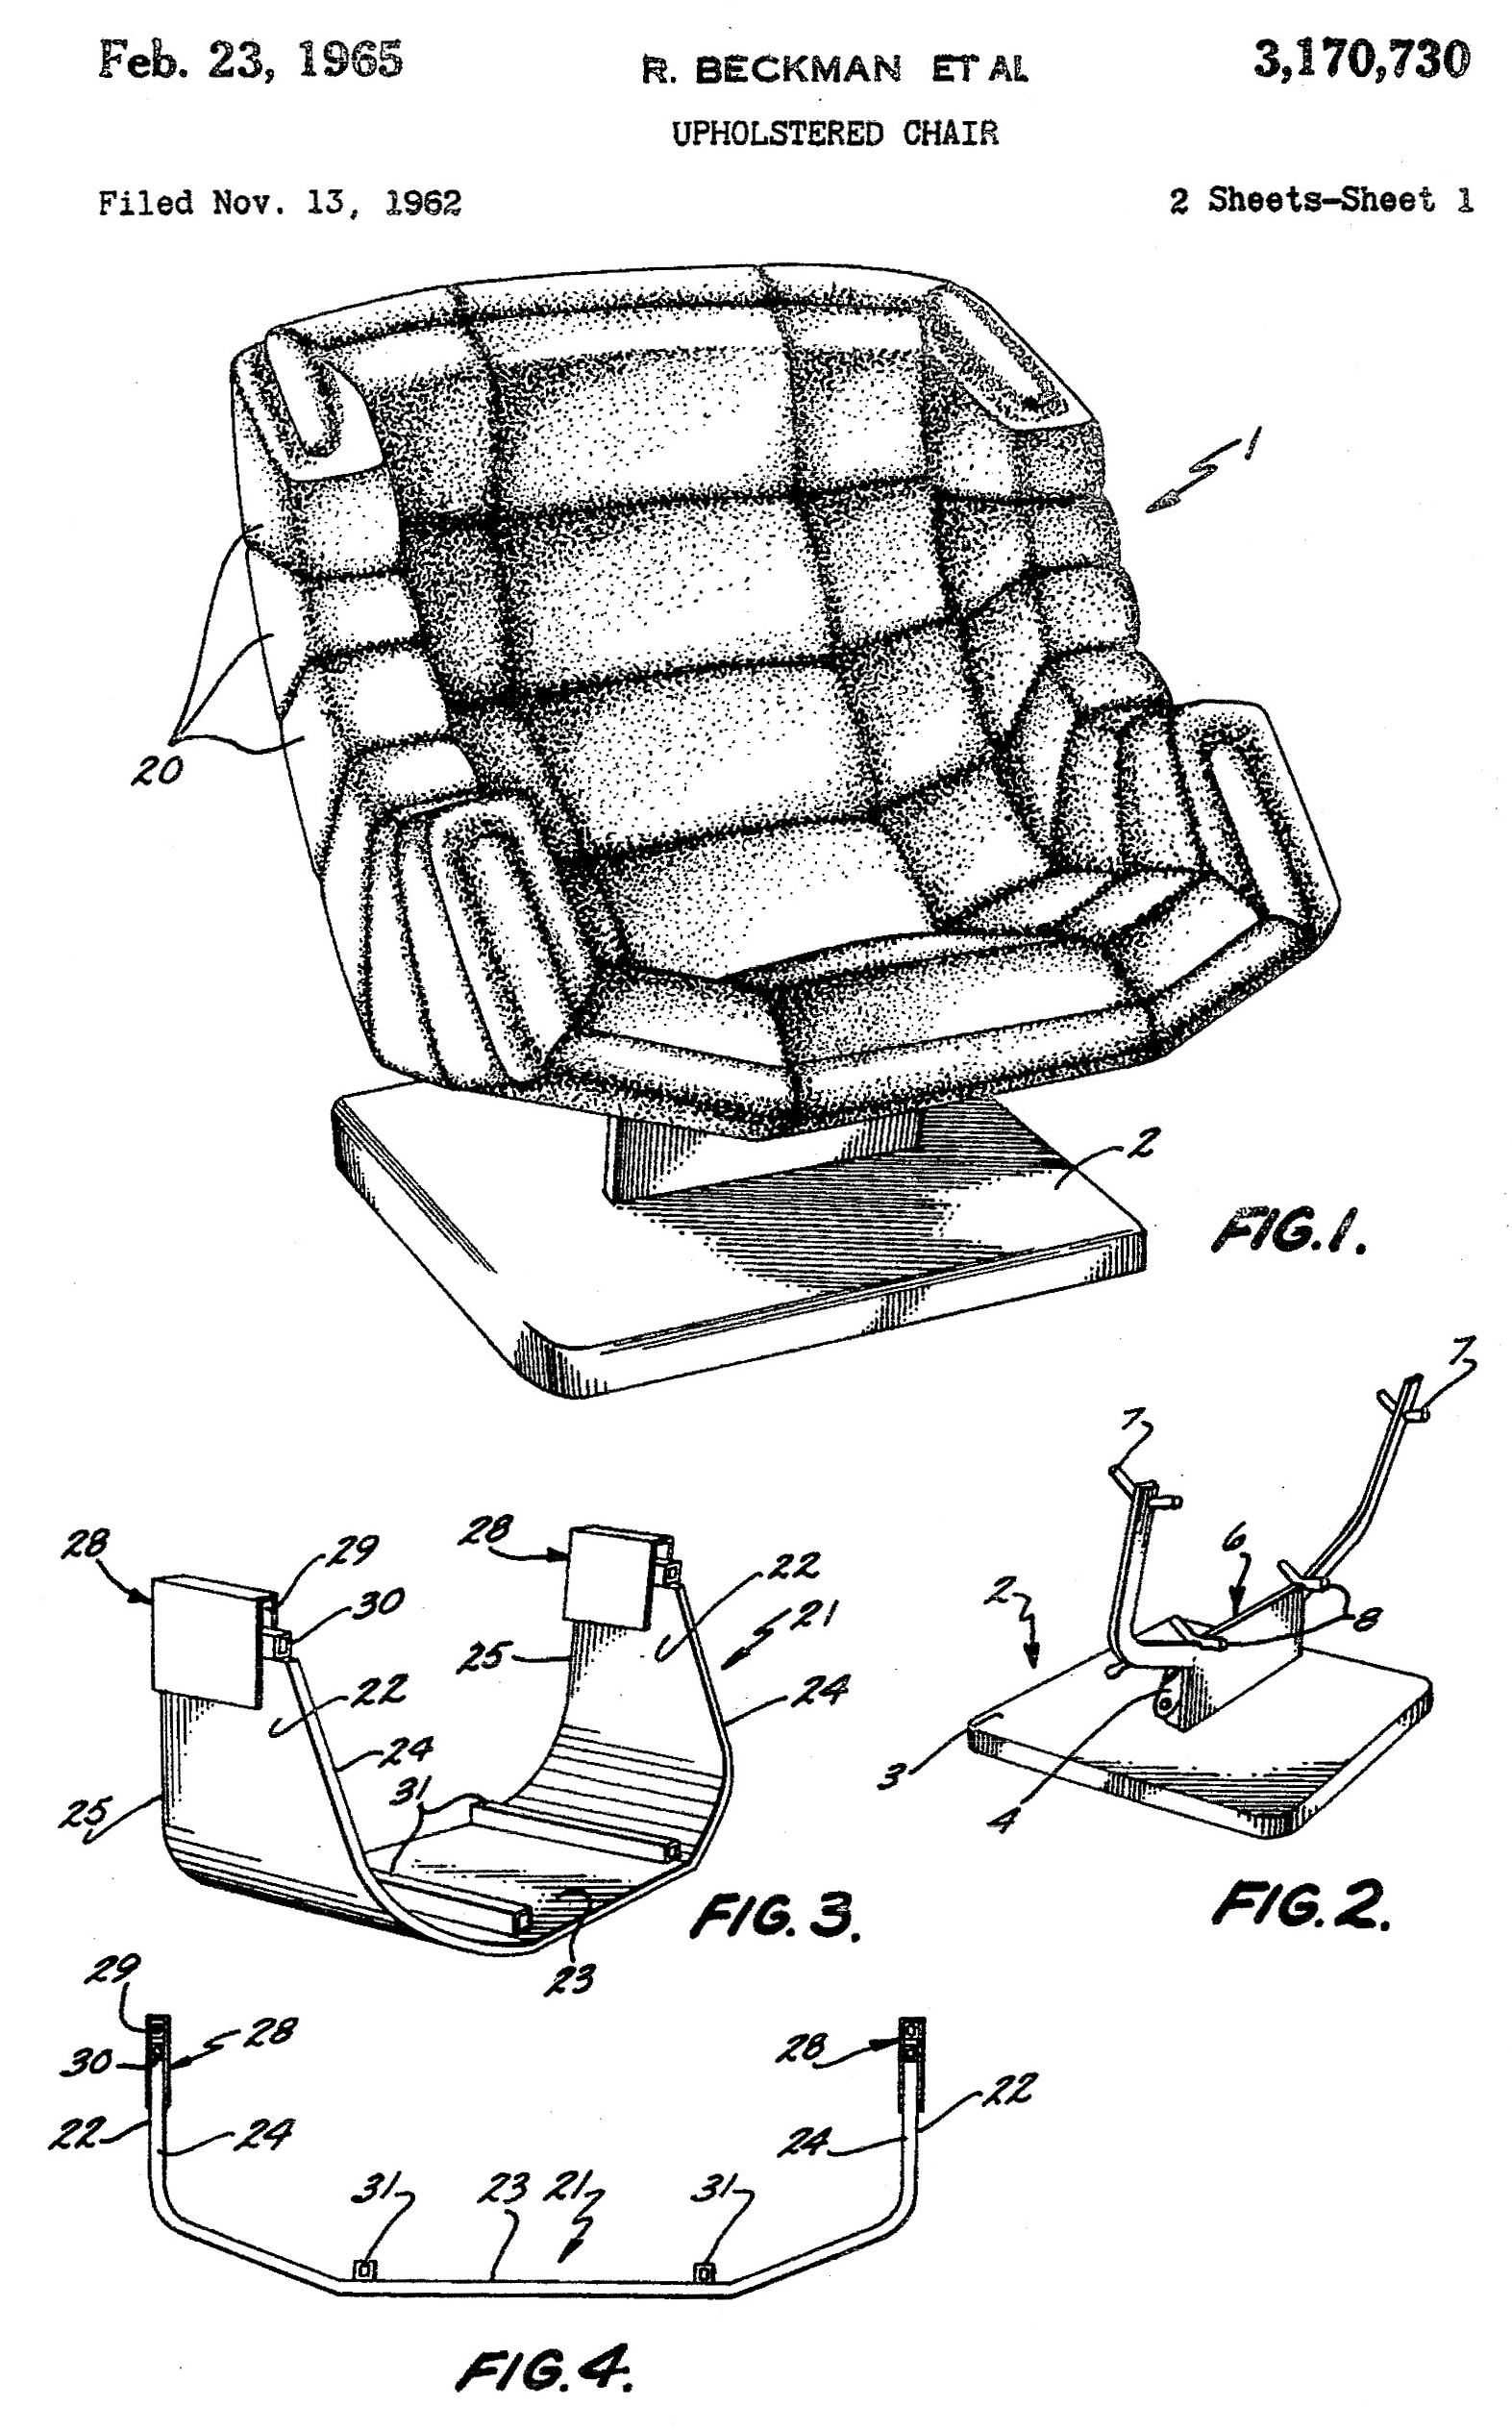 Segmented chair patent office drawing